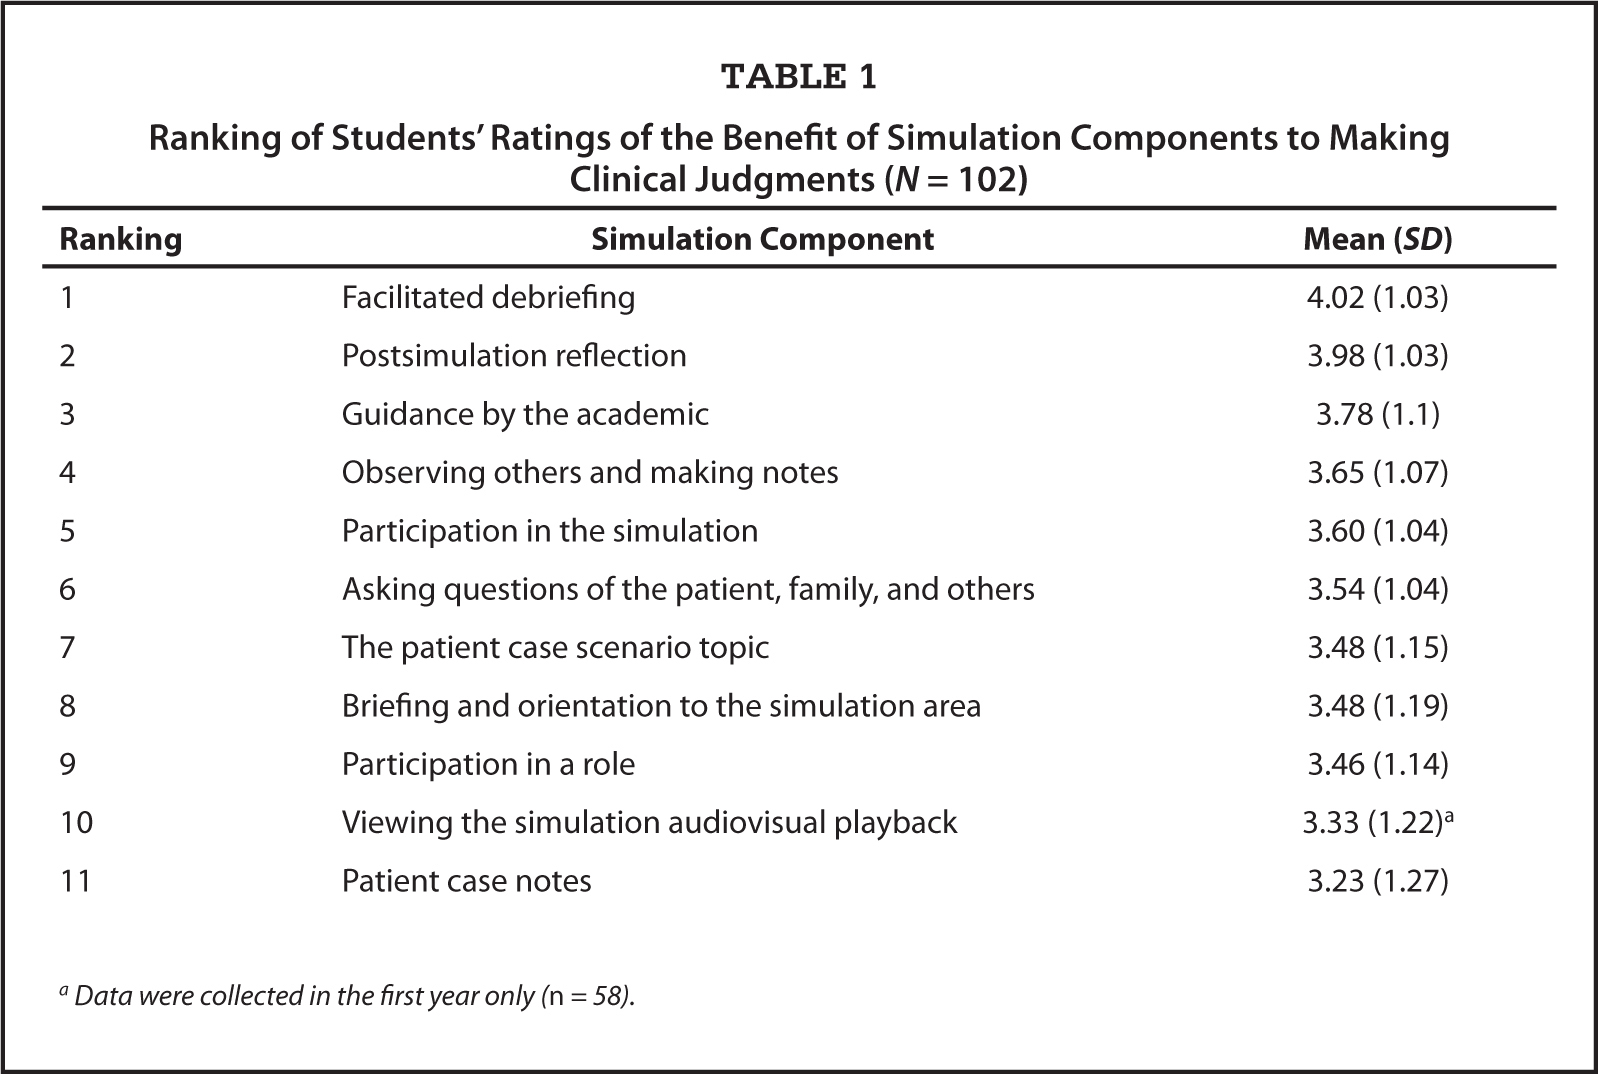 Ranking of Students' Ratings of the Benefit of Simulation Components to Making Clinical Judgments (N = 102)